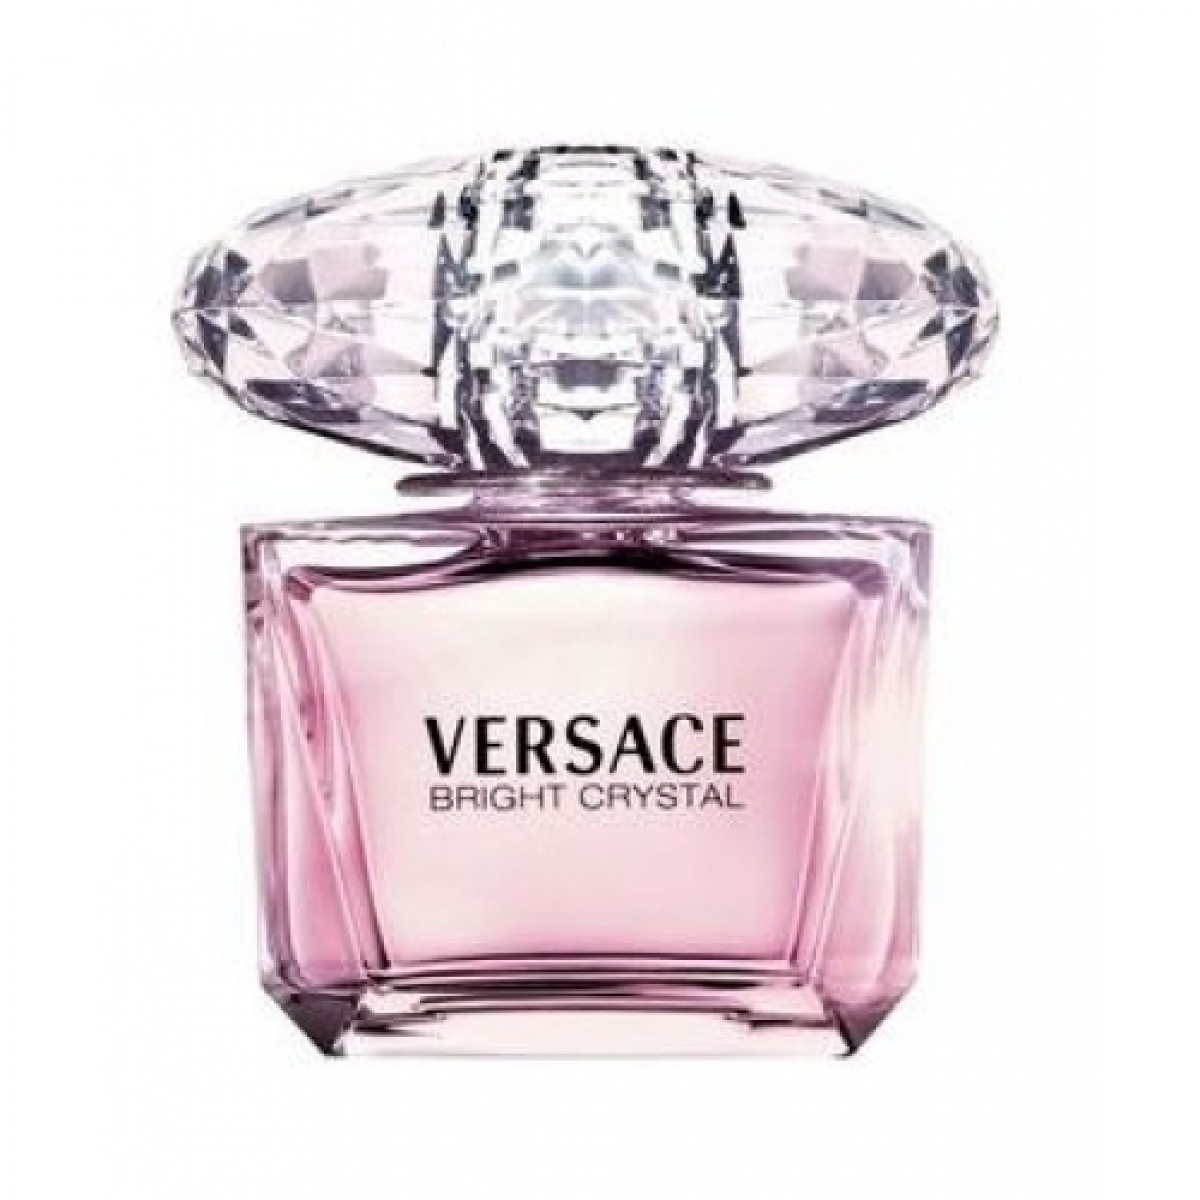 versace for women smell 1